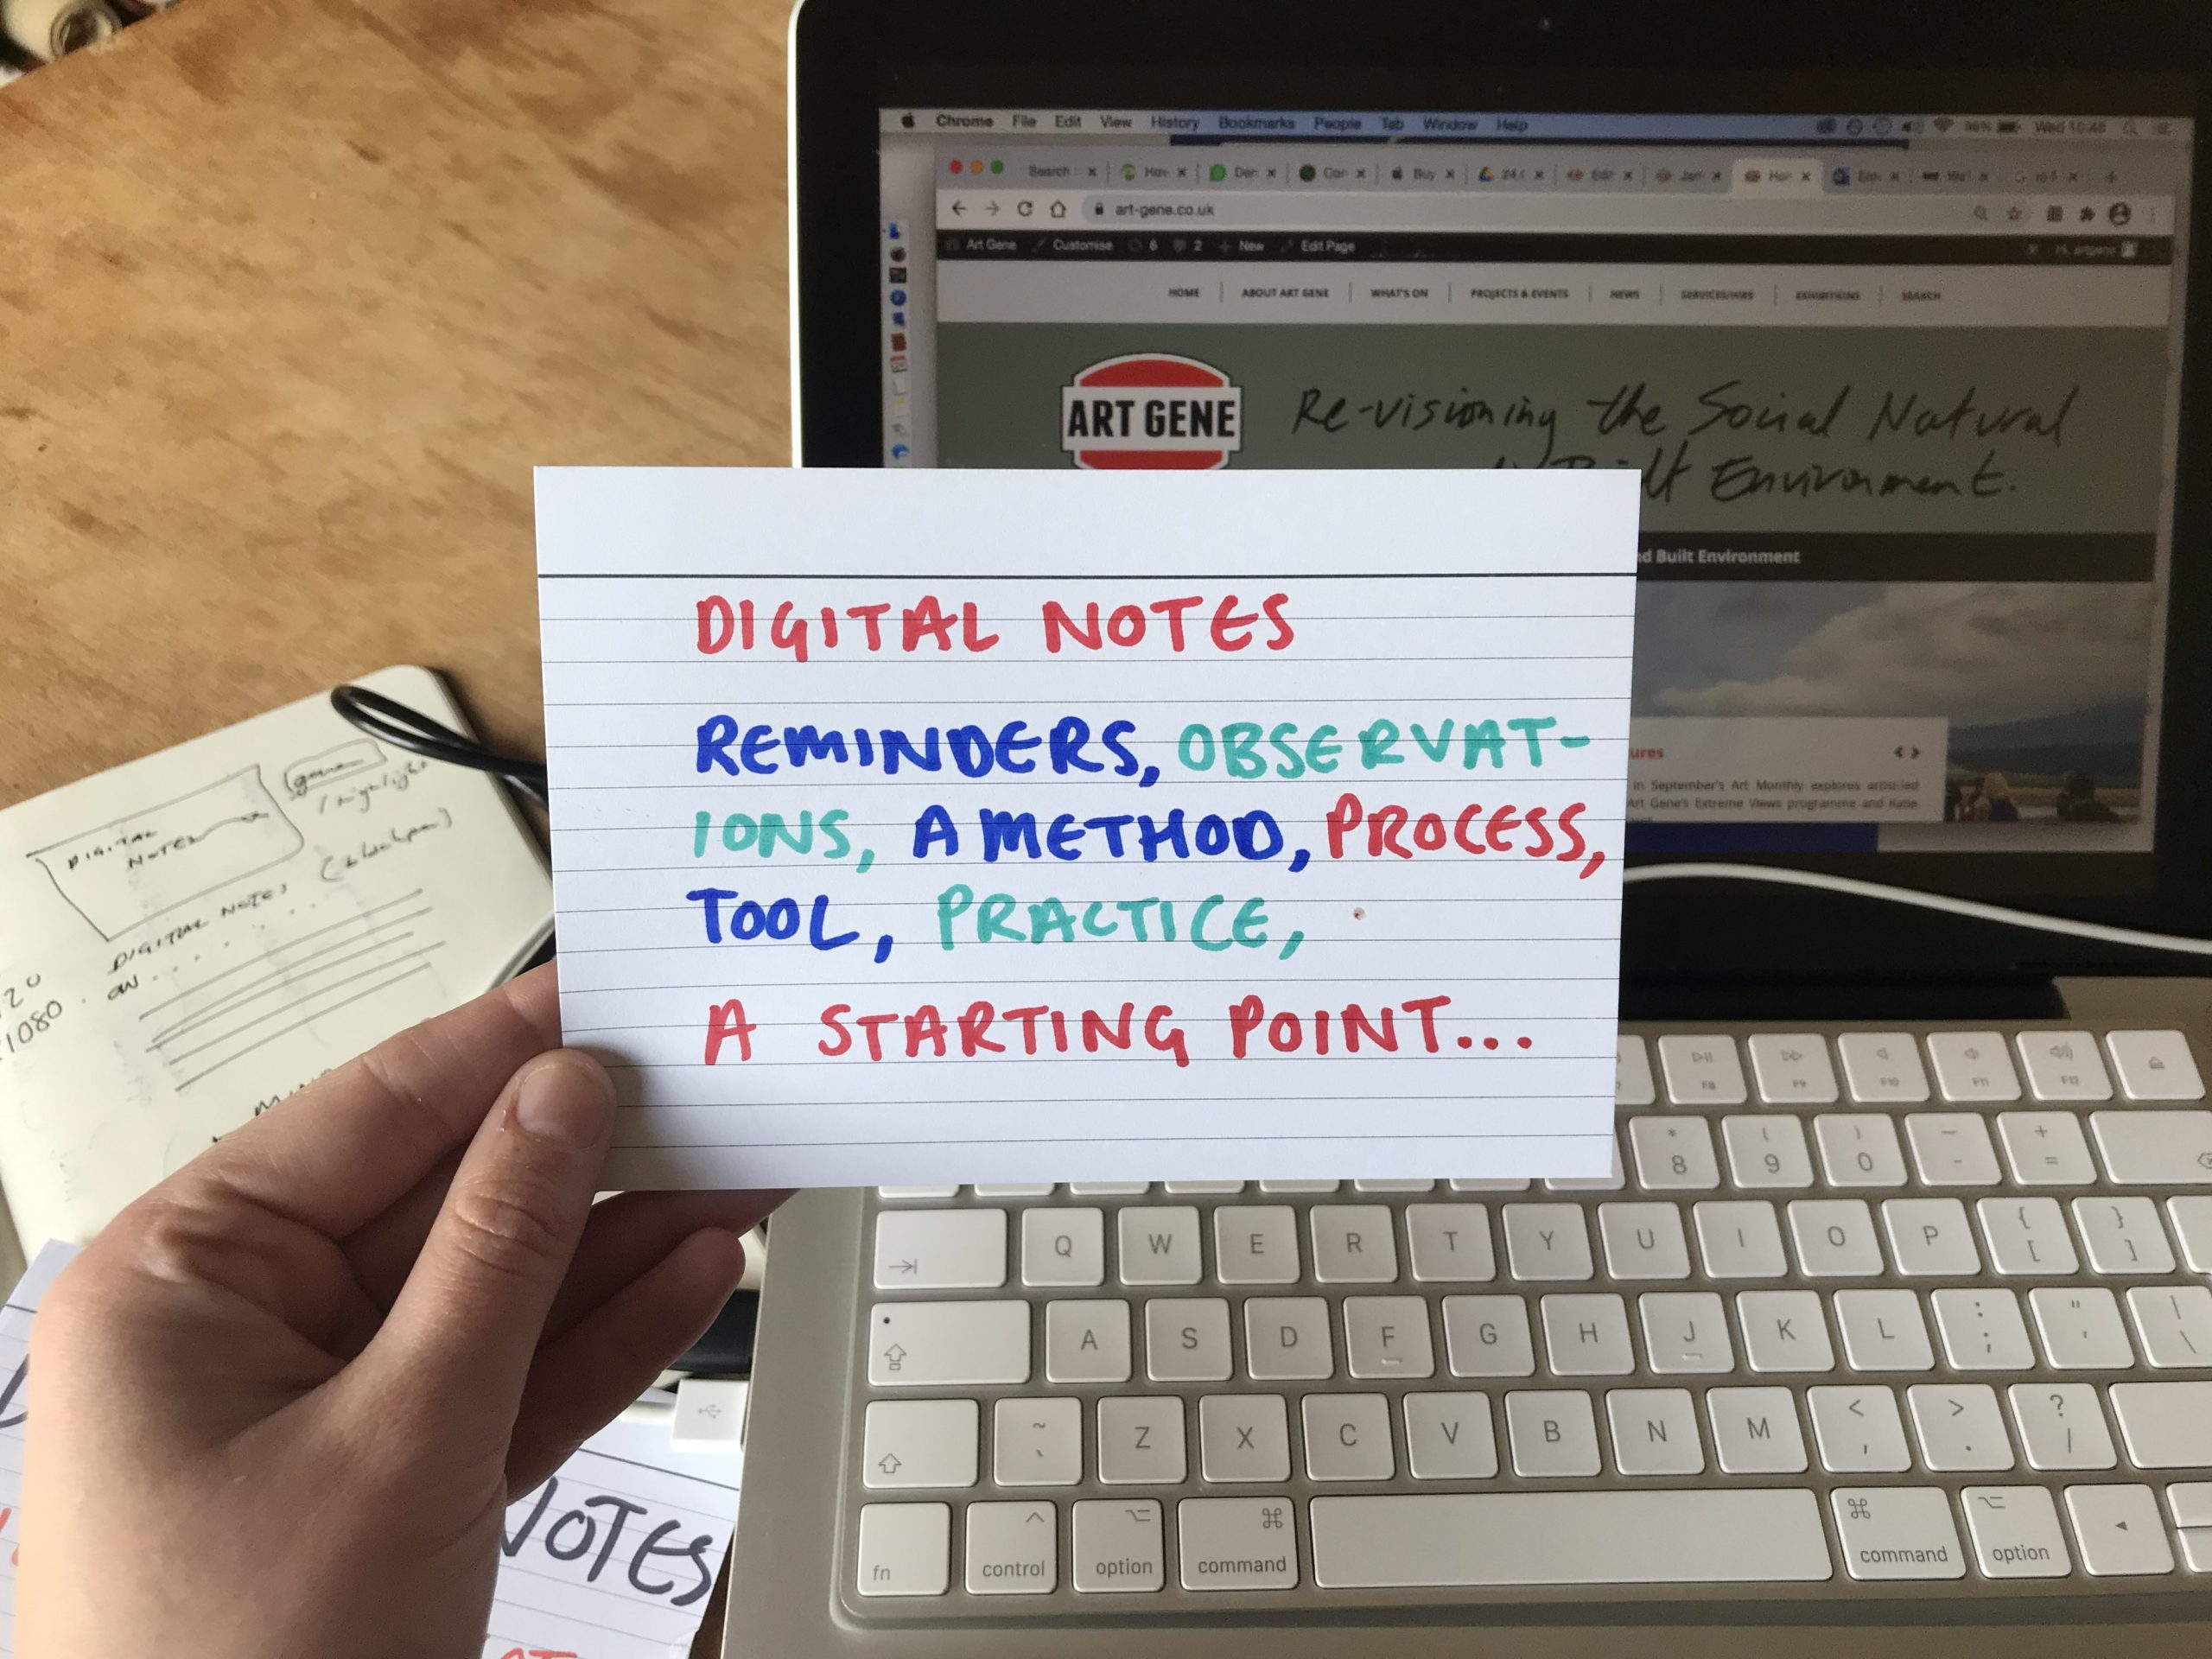 Digital Notes: reminders, observations, a method, process, tool, practice, a starting point ...